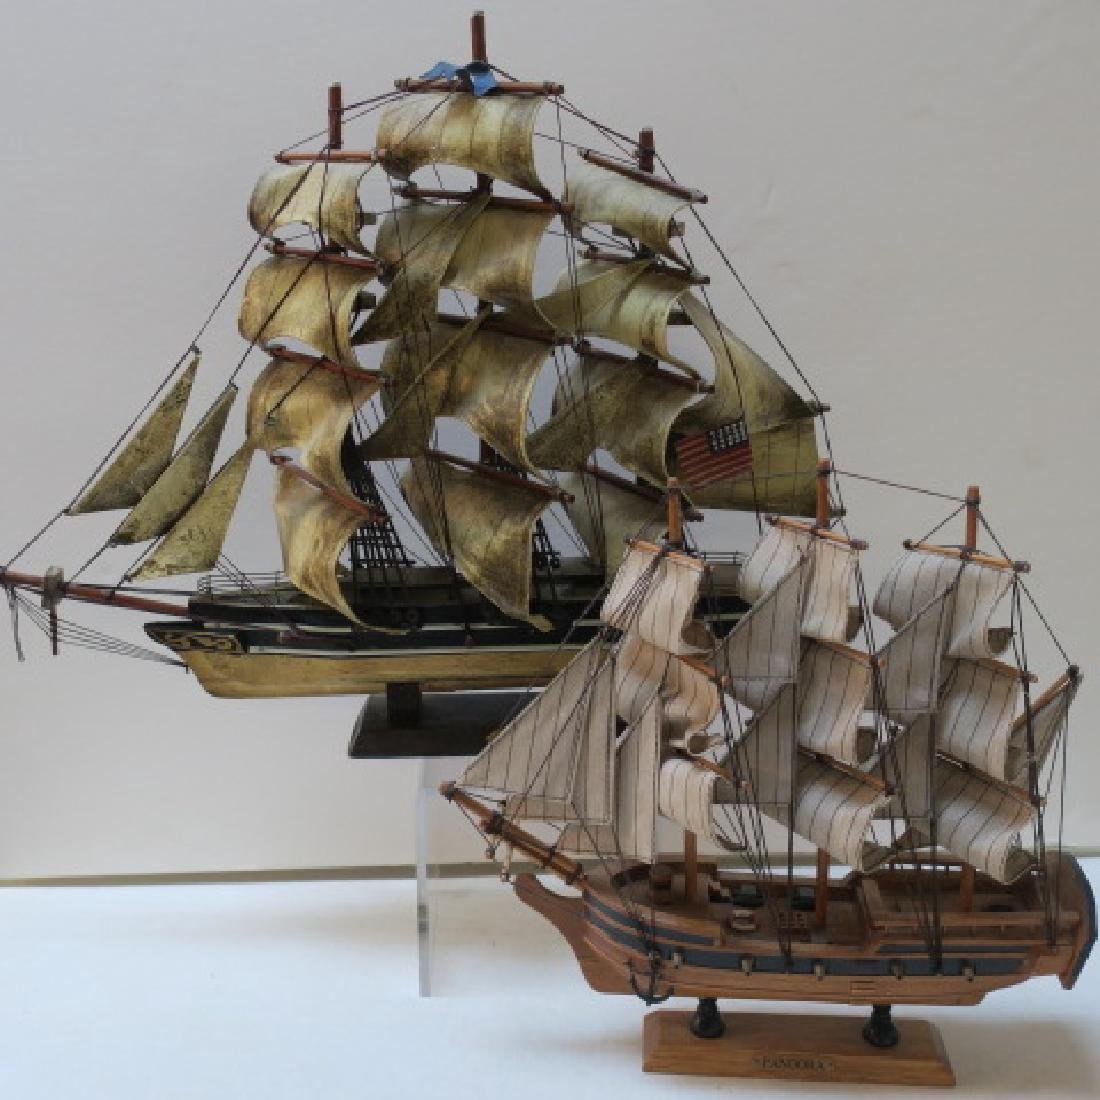 Two Wooden Model Clipper Ships, Pandora and Red Jacket